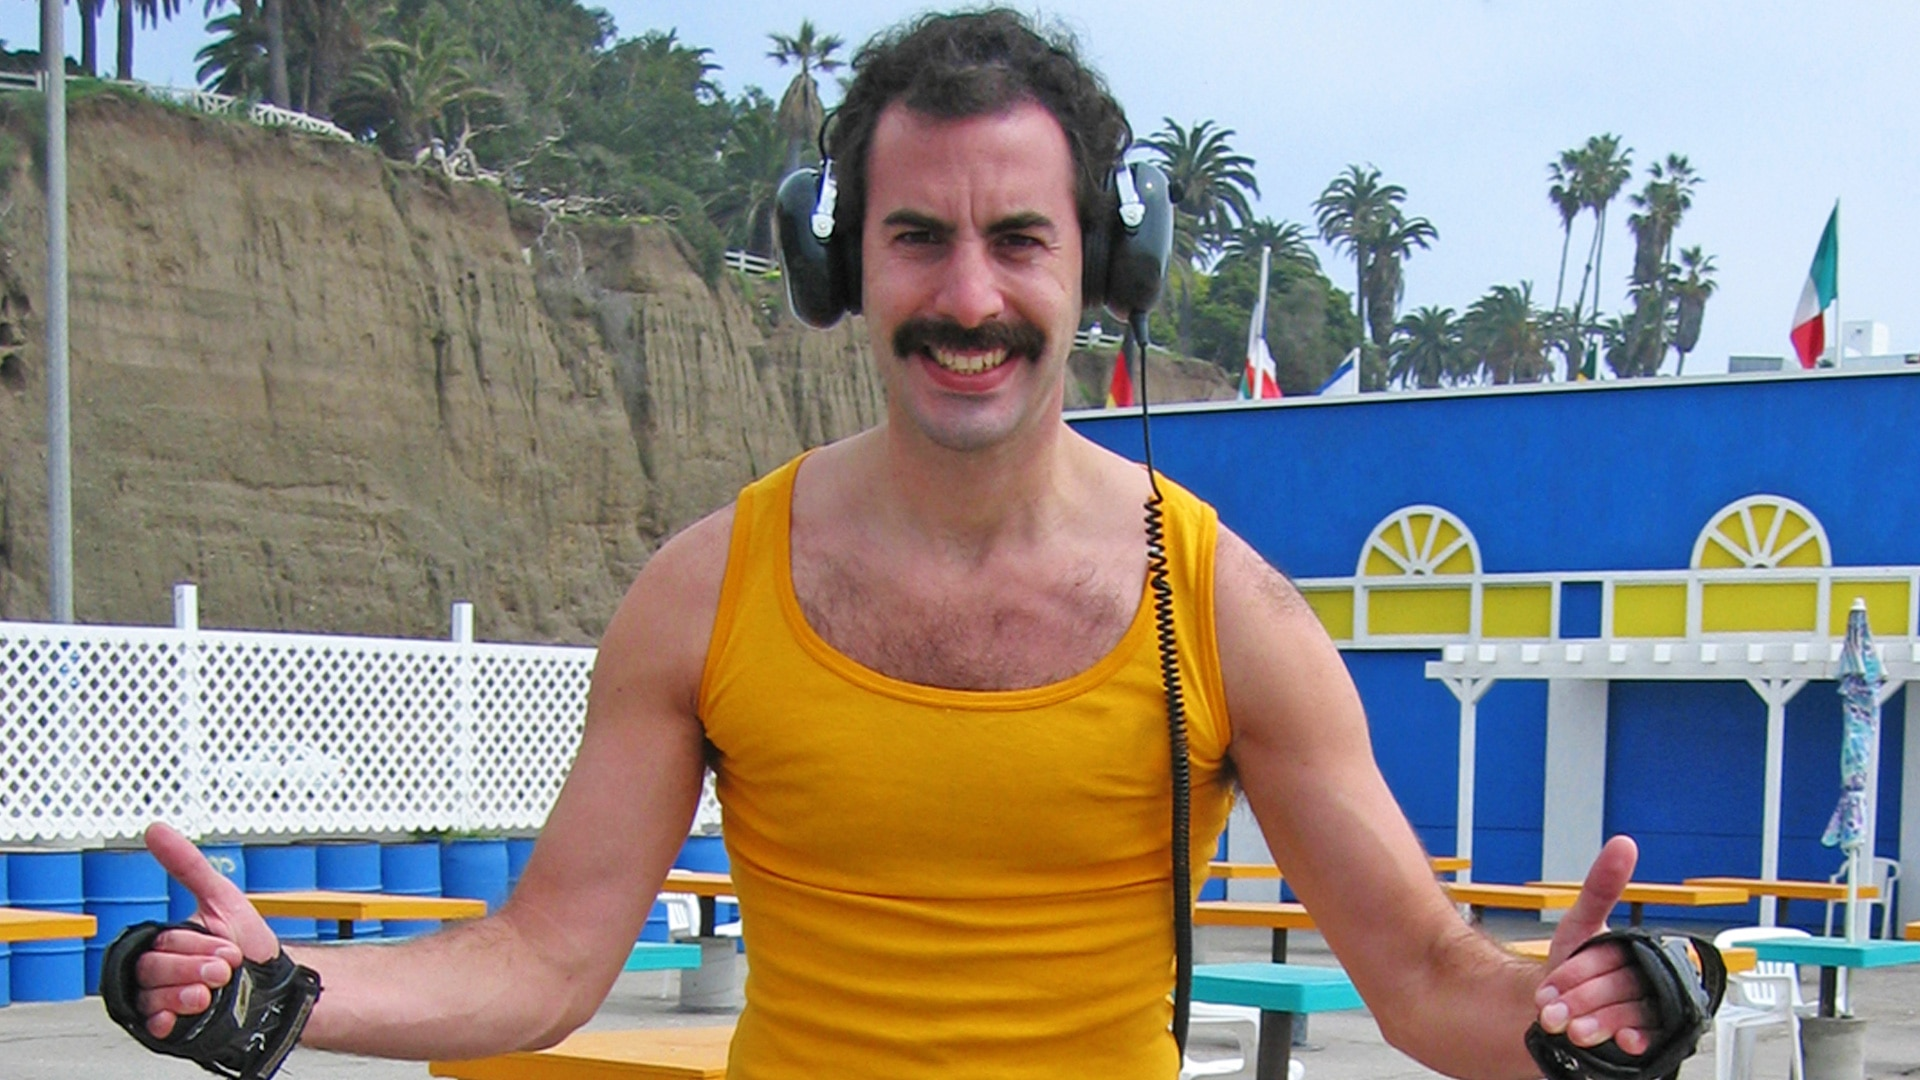 Borat stands in a vest